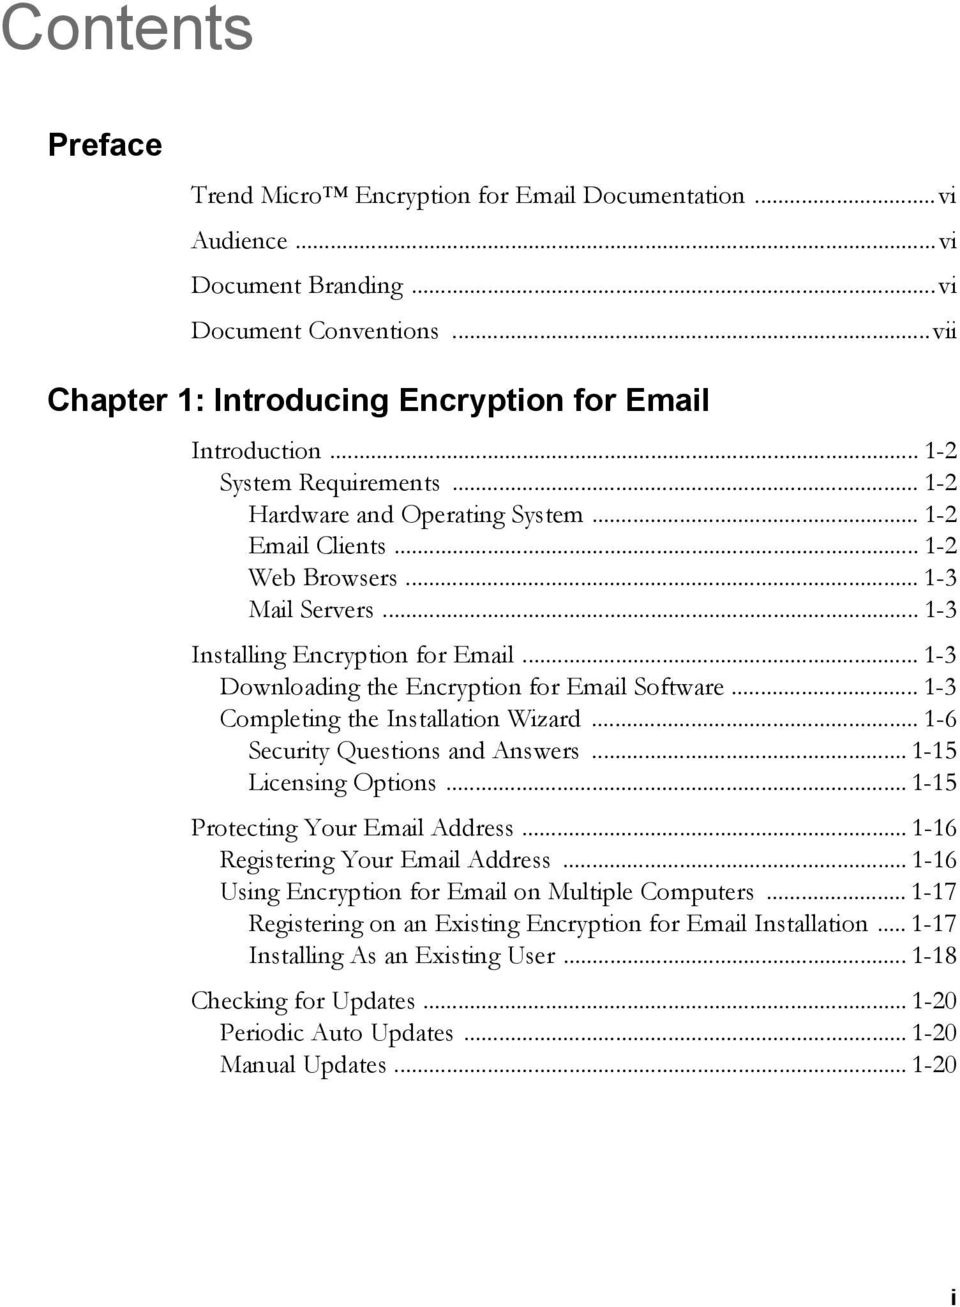 .. 1-3 Downloading the Encryption for Email Software... 1-3 Completing the Installation Wizard... 1-6 Security Questions and Answers... 1-15 Licensing Options... 1-15 Protecting Your Email Address.